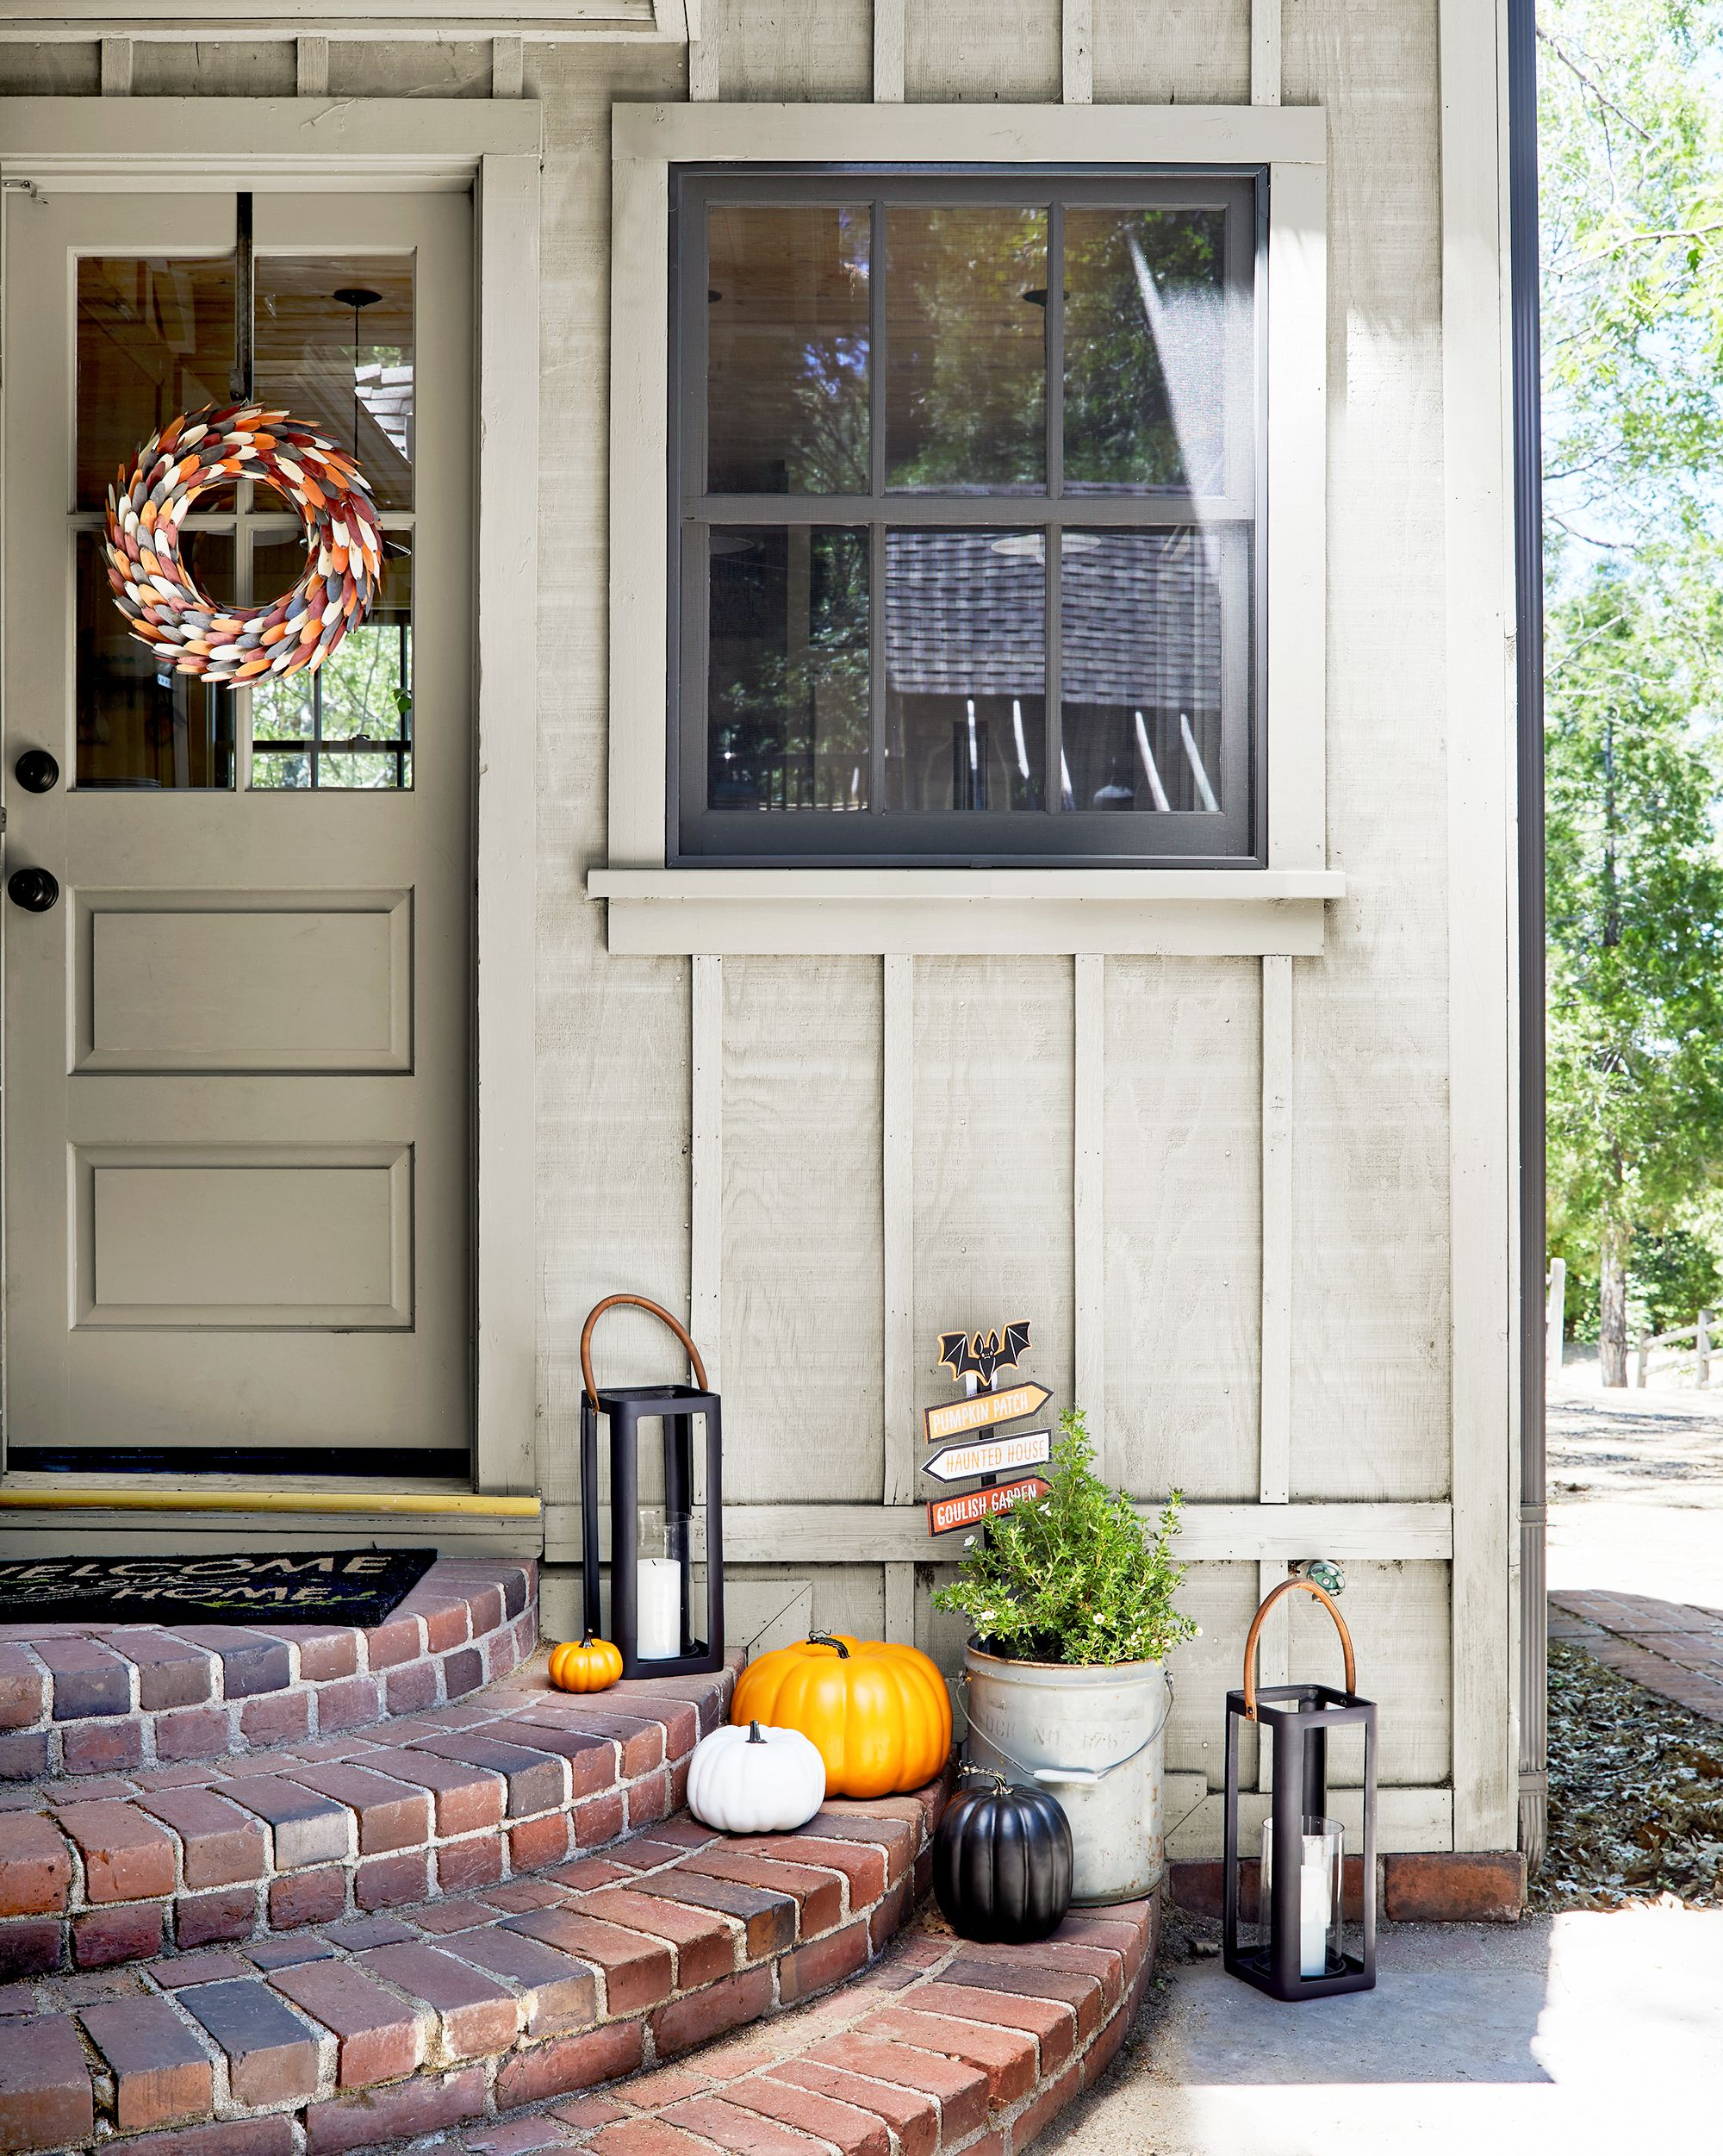 34 Fall Porch Decor Ideas Best Autumn Front Porch Decorations